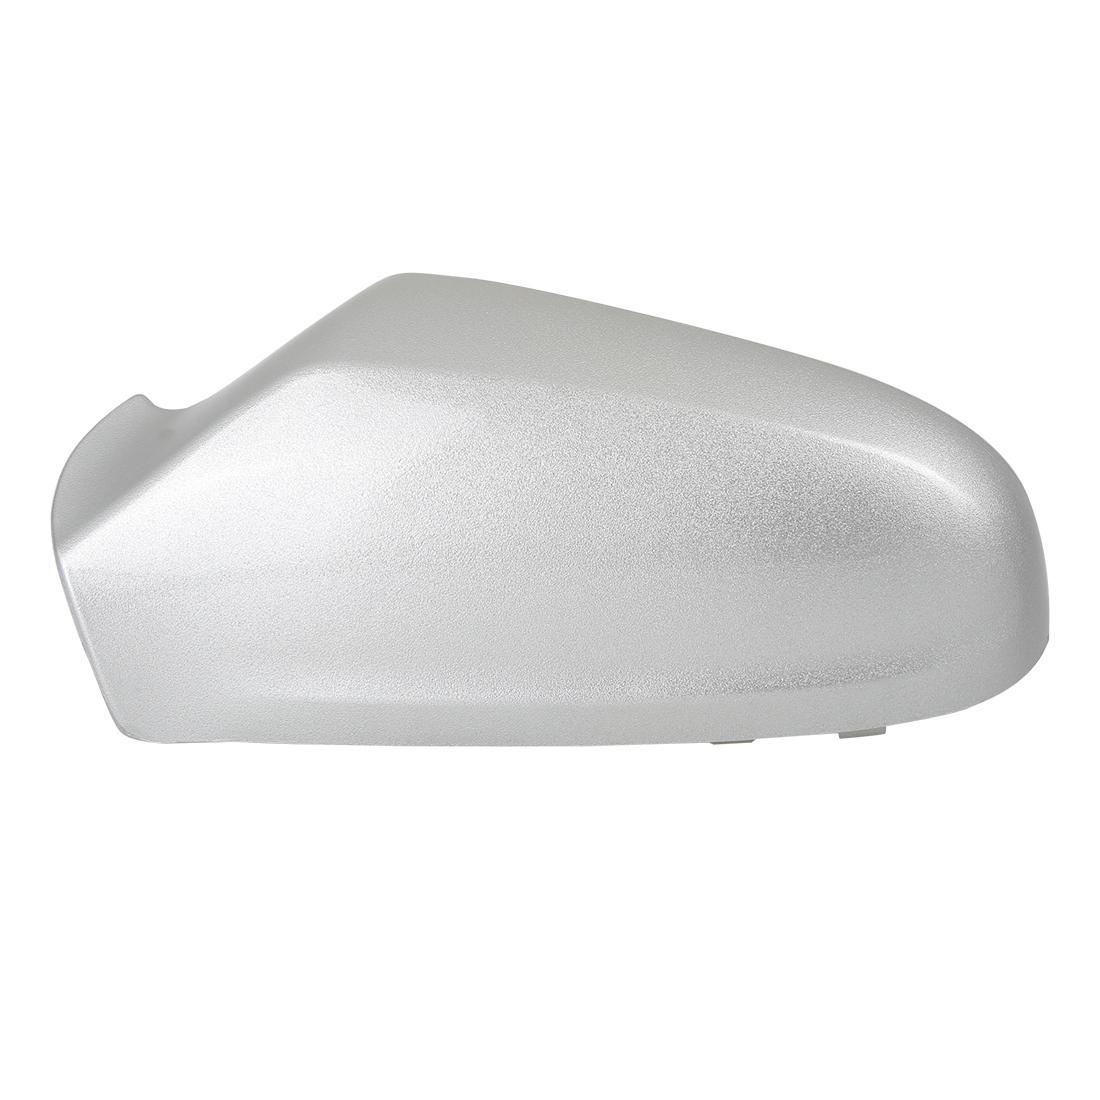 Left Passenger Side Painted Door Wing Mirror Cover Caps for Astra H 2005-2009